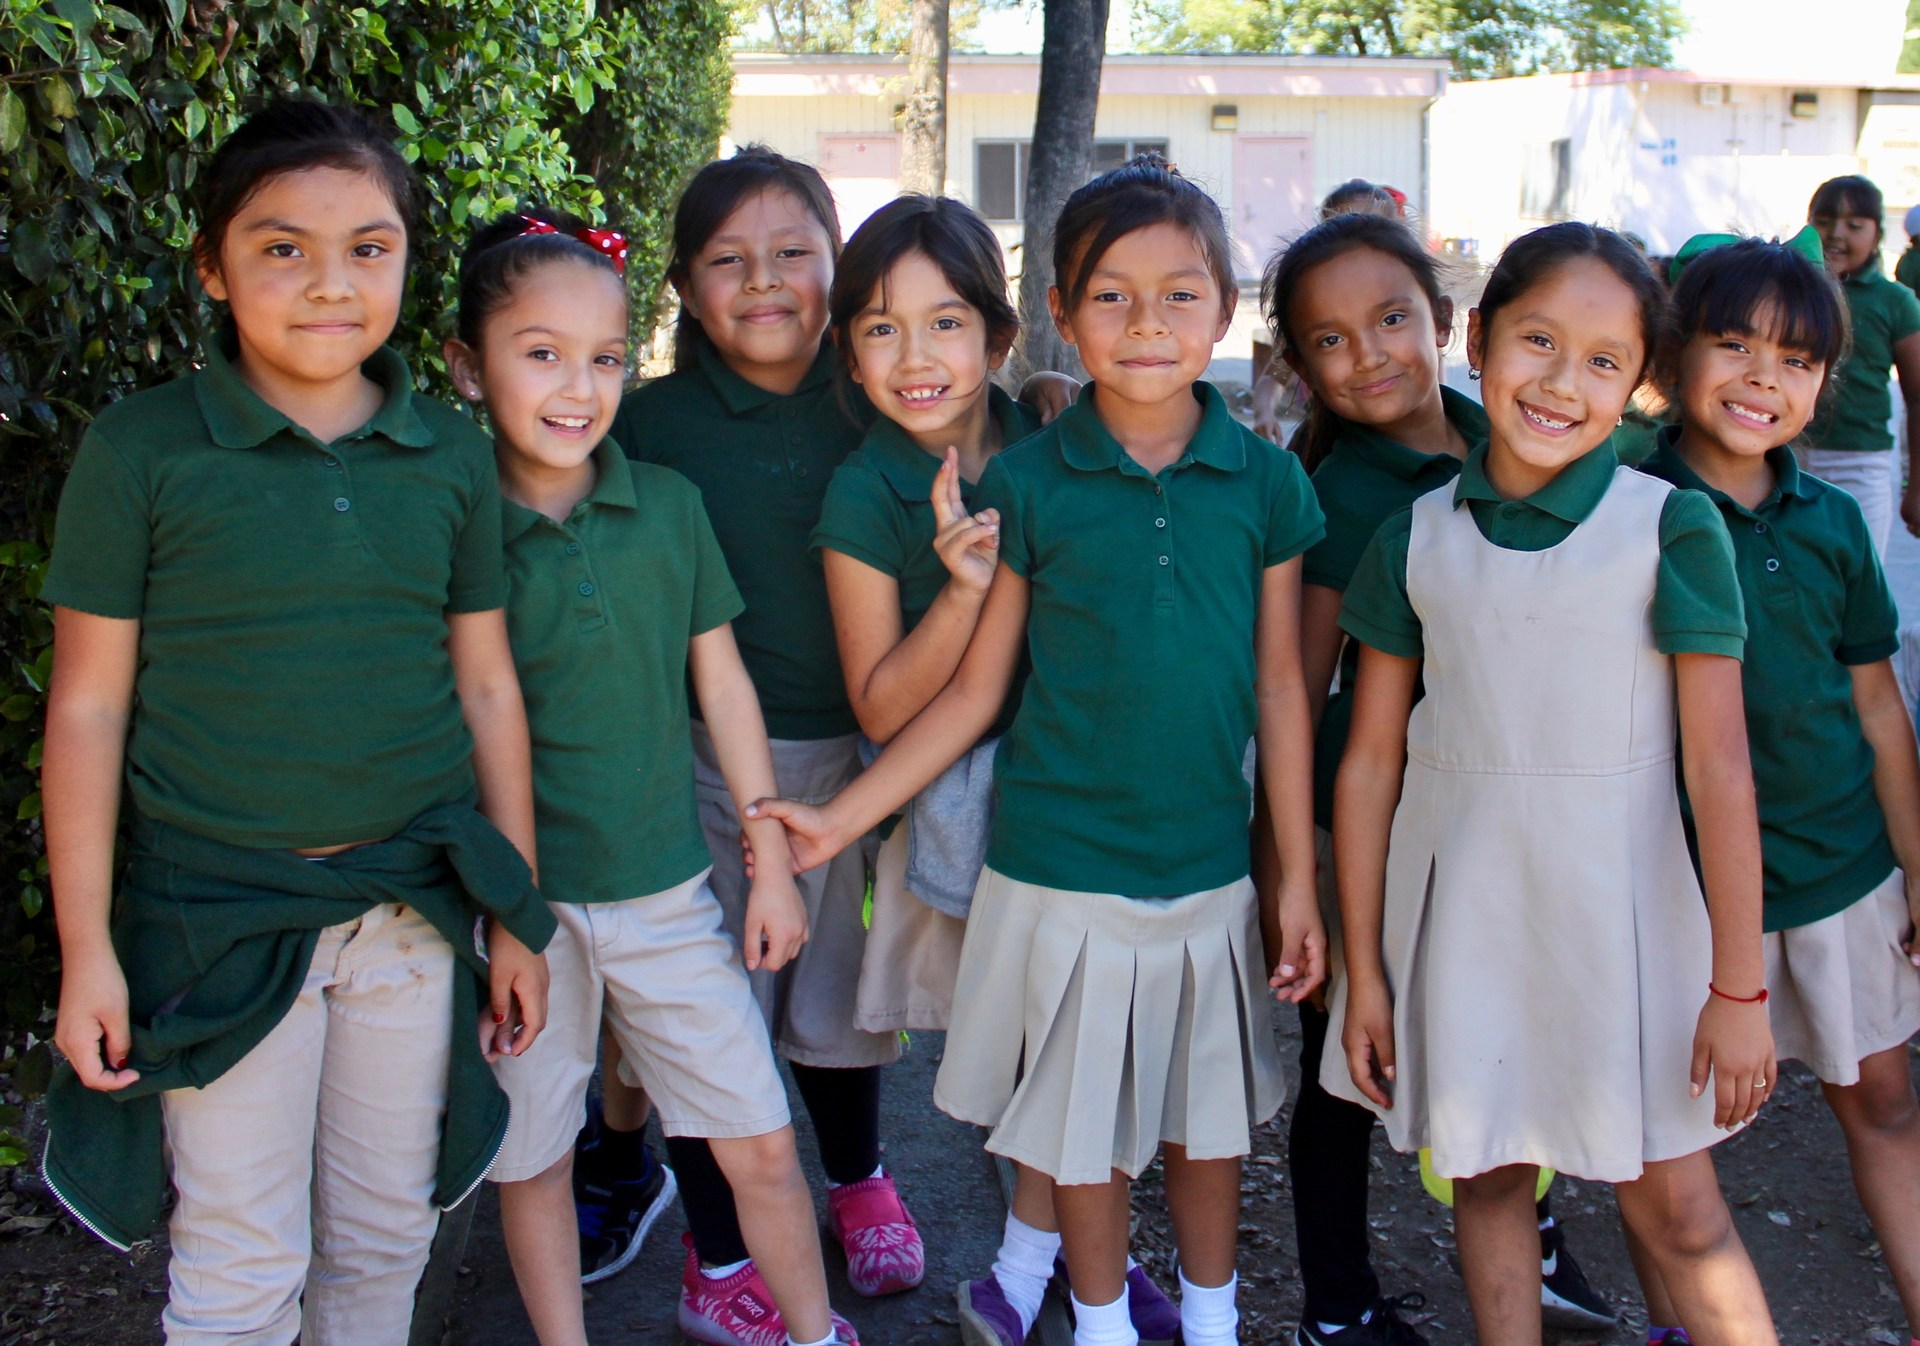 a group of smiling girls in school uniforms